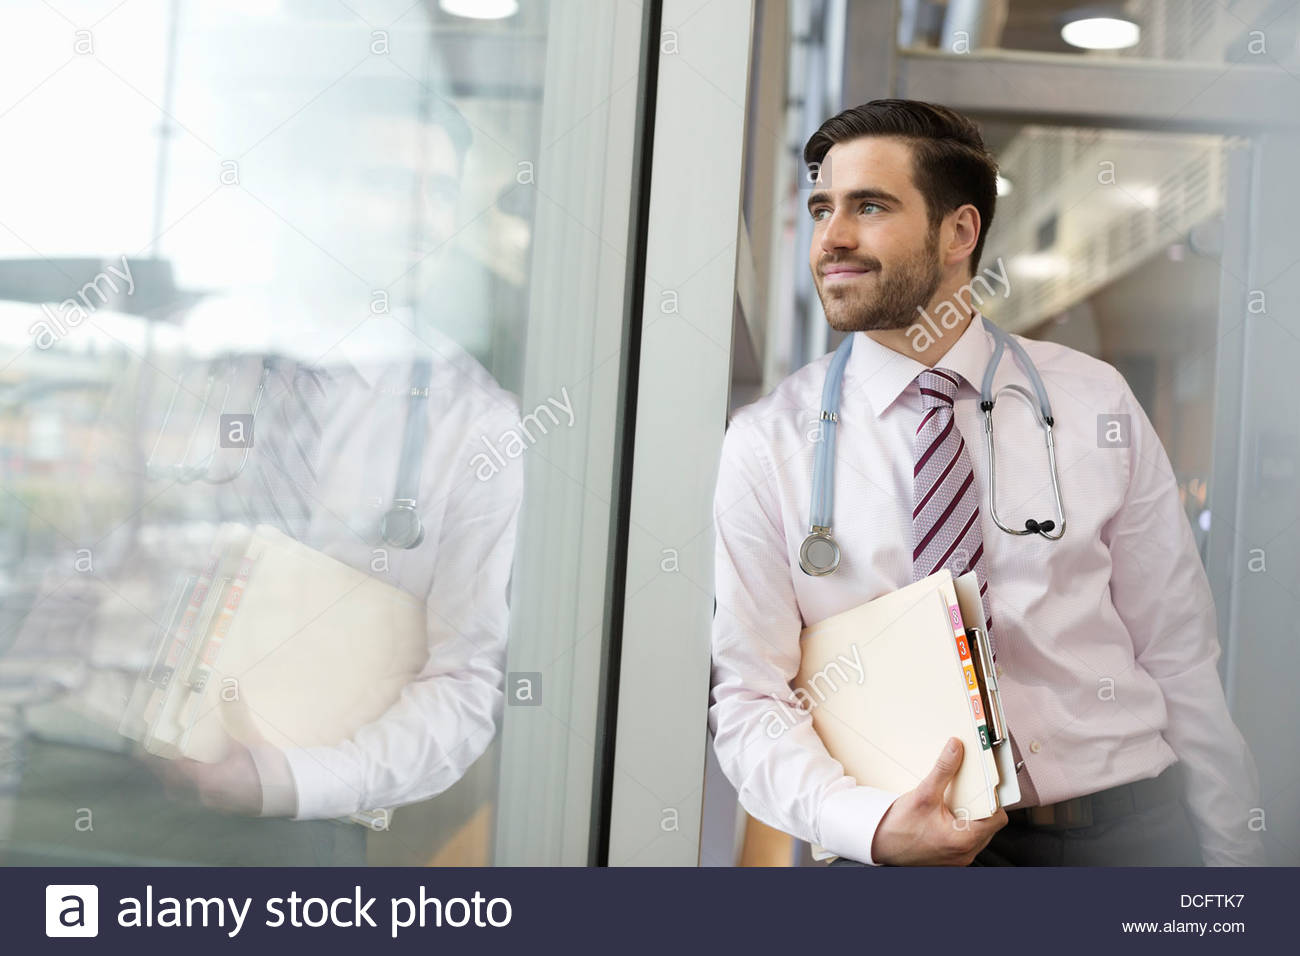 Medical professional leaning against window - Stock Image